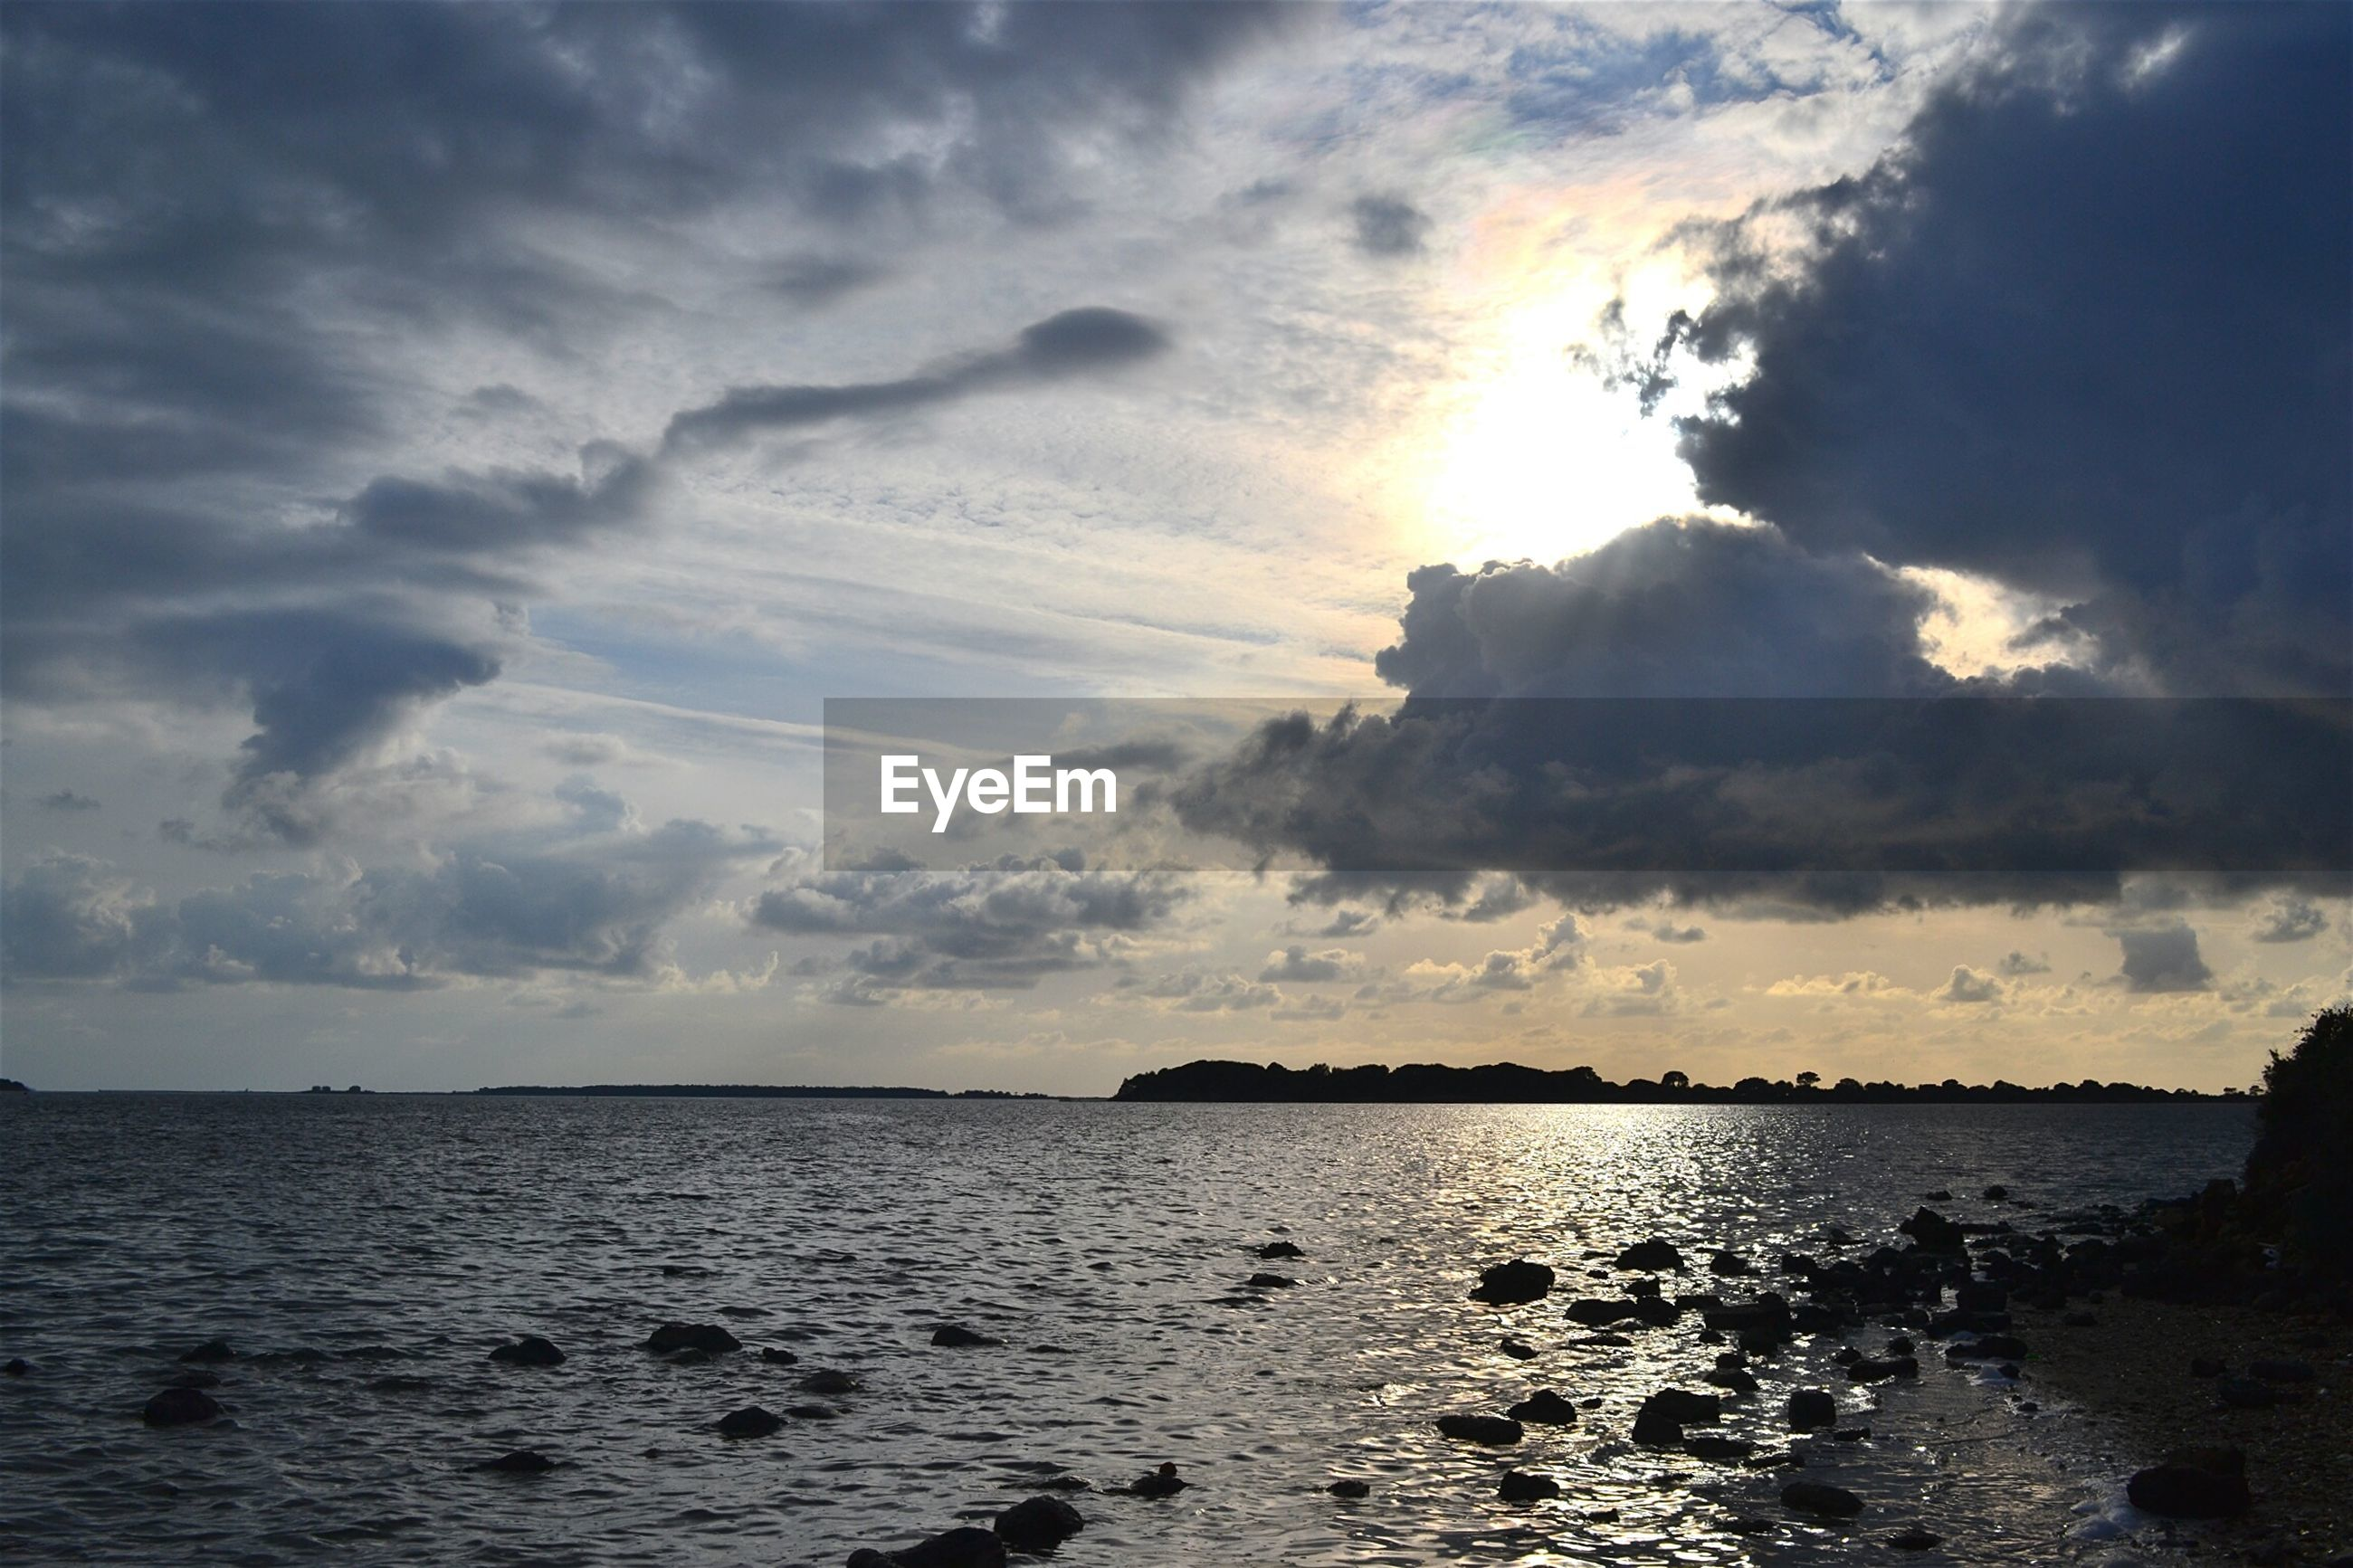 sea, water, sky, horizon over water, scenics, cloud - sky, tranquil scene, beauty in nature, tranquility, sunset, cloudy, nature, cloud, idyllic, beach, waterfront, sun, outdoors, sunlight, shore